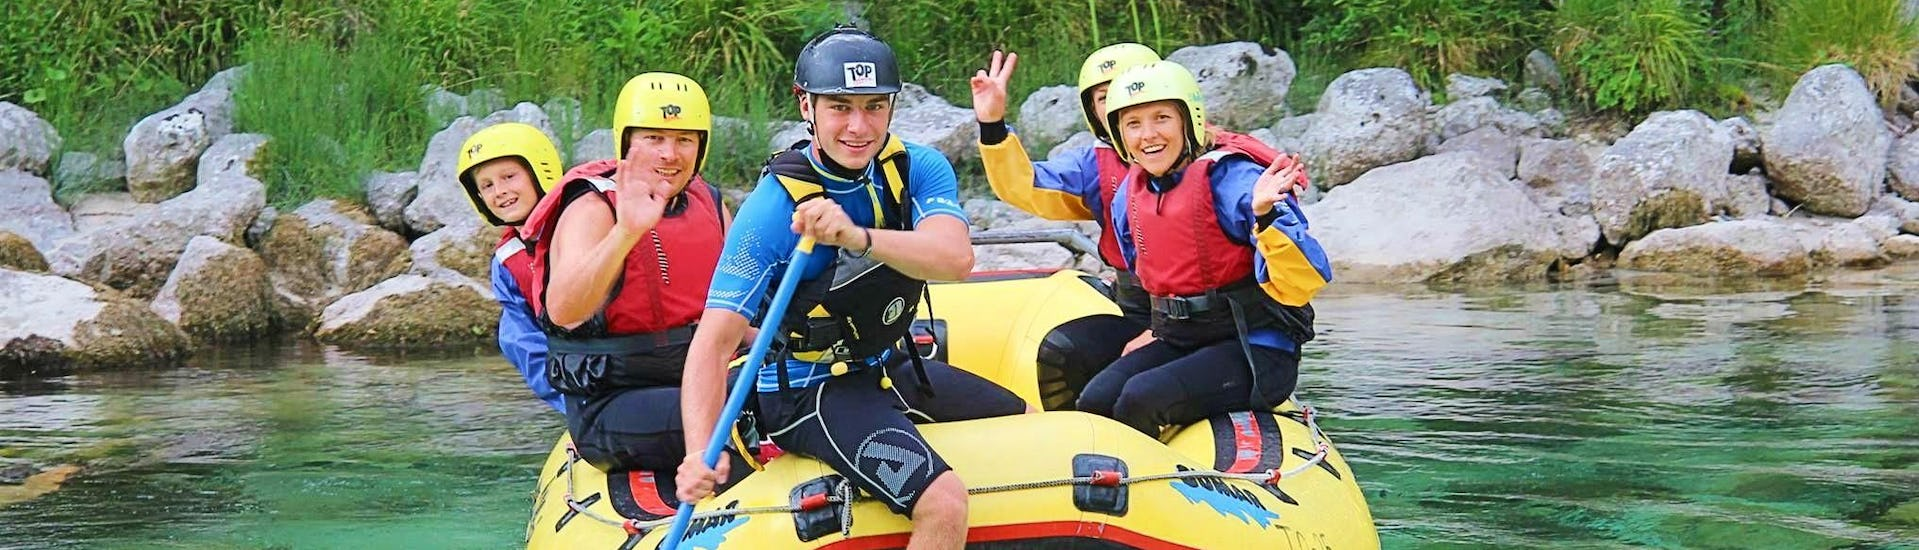 Rafting on the Soča River for Families